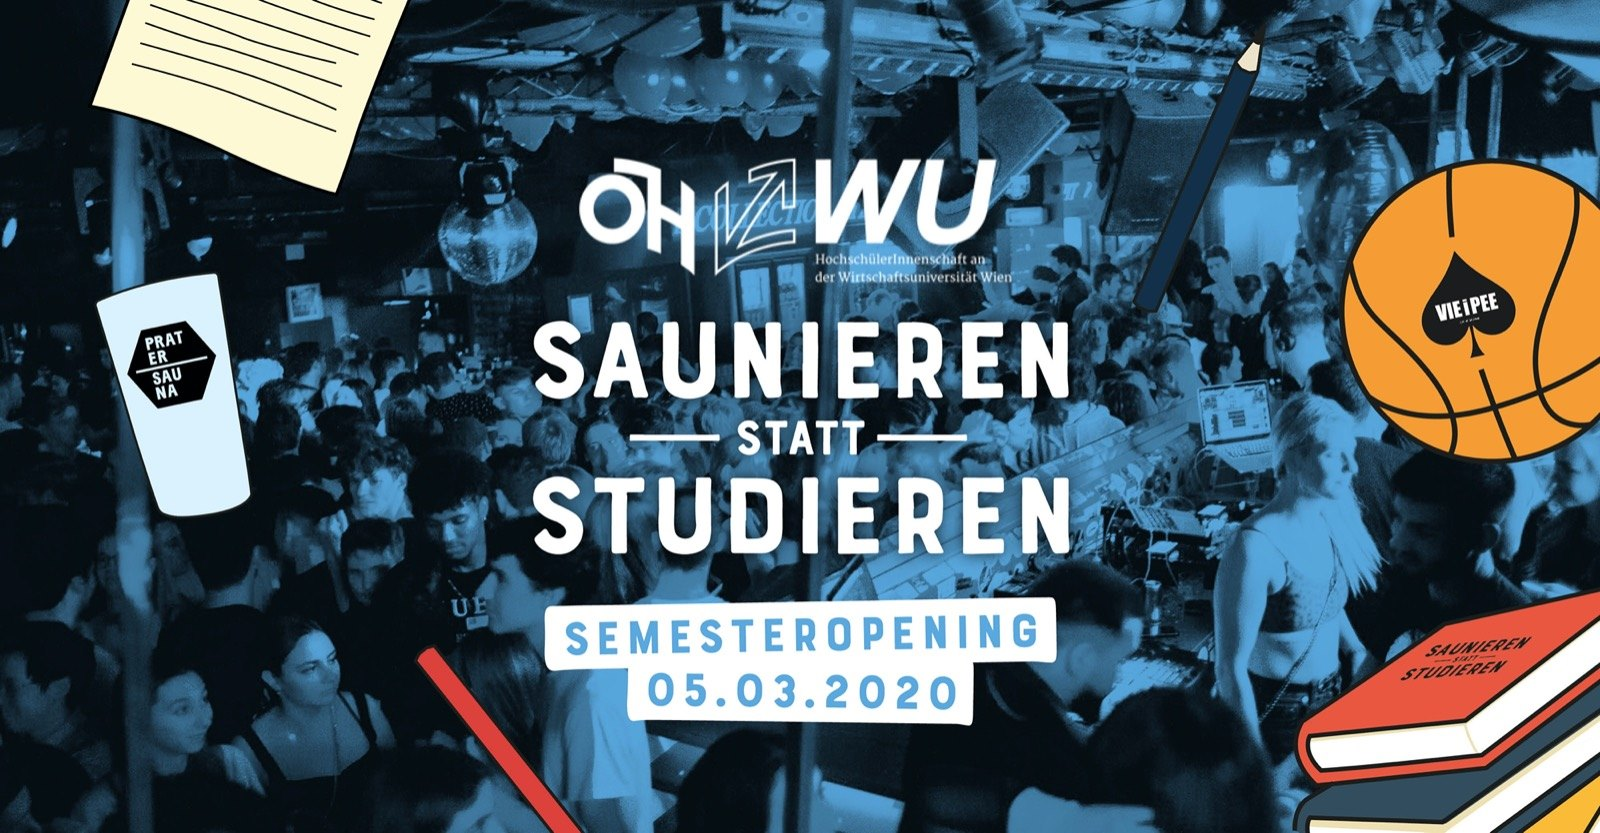 Saunieren statt Studieren x ÖH WU | Semesteropening am 5. March 2020 @ Pratersauna.